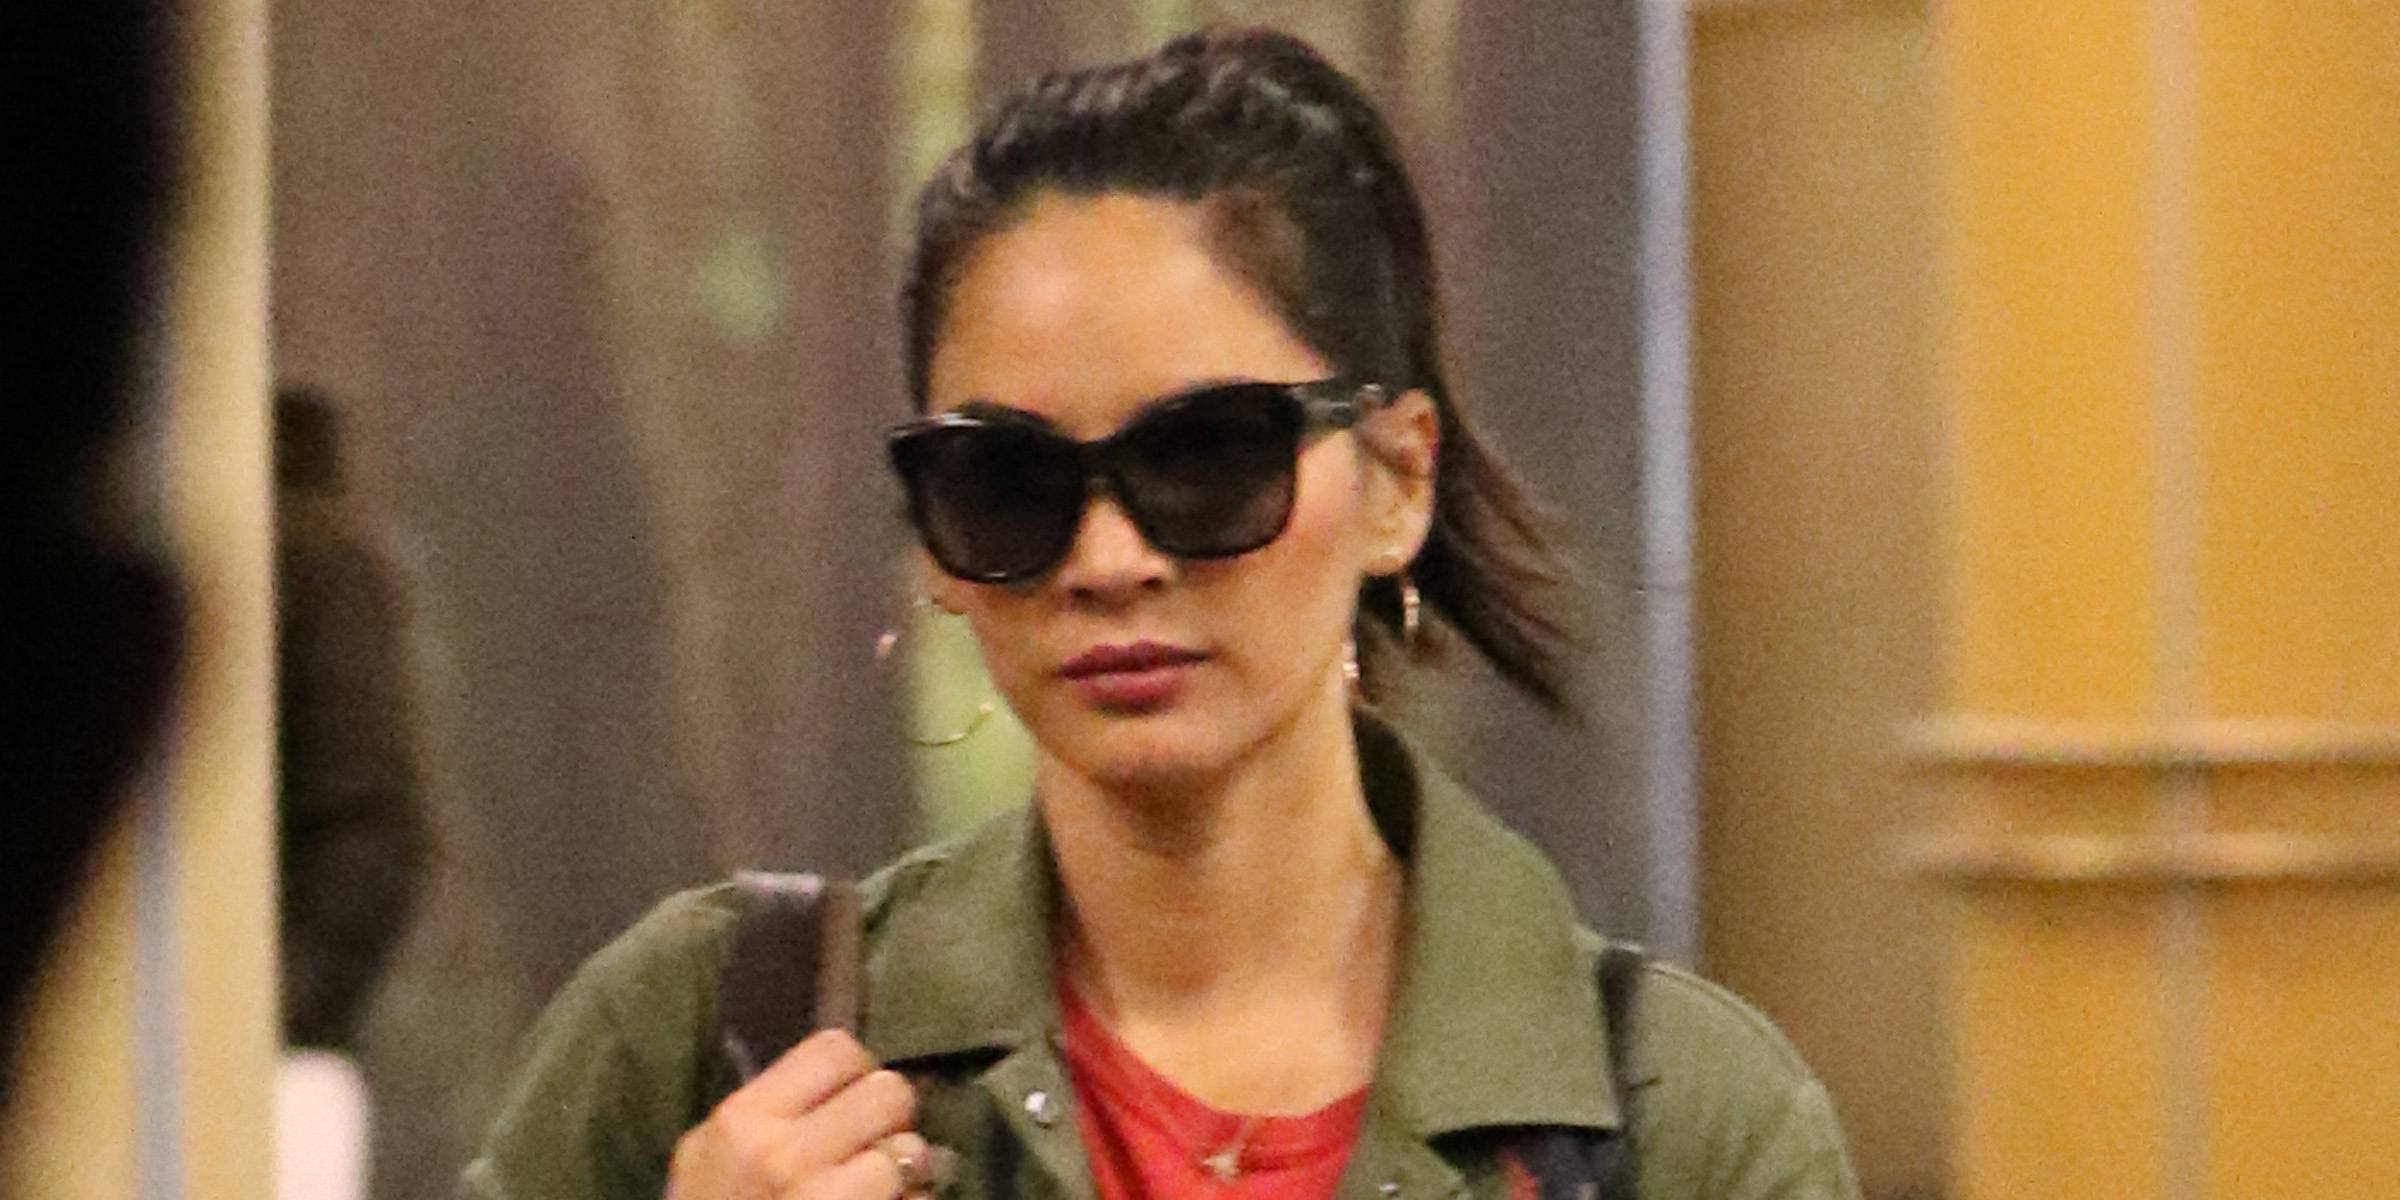 A very stylish Olivia Munn spotted at Vancouver International Airport (PHOTOS)